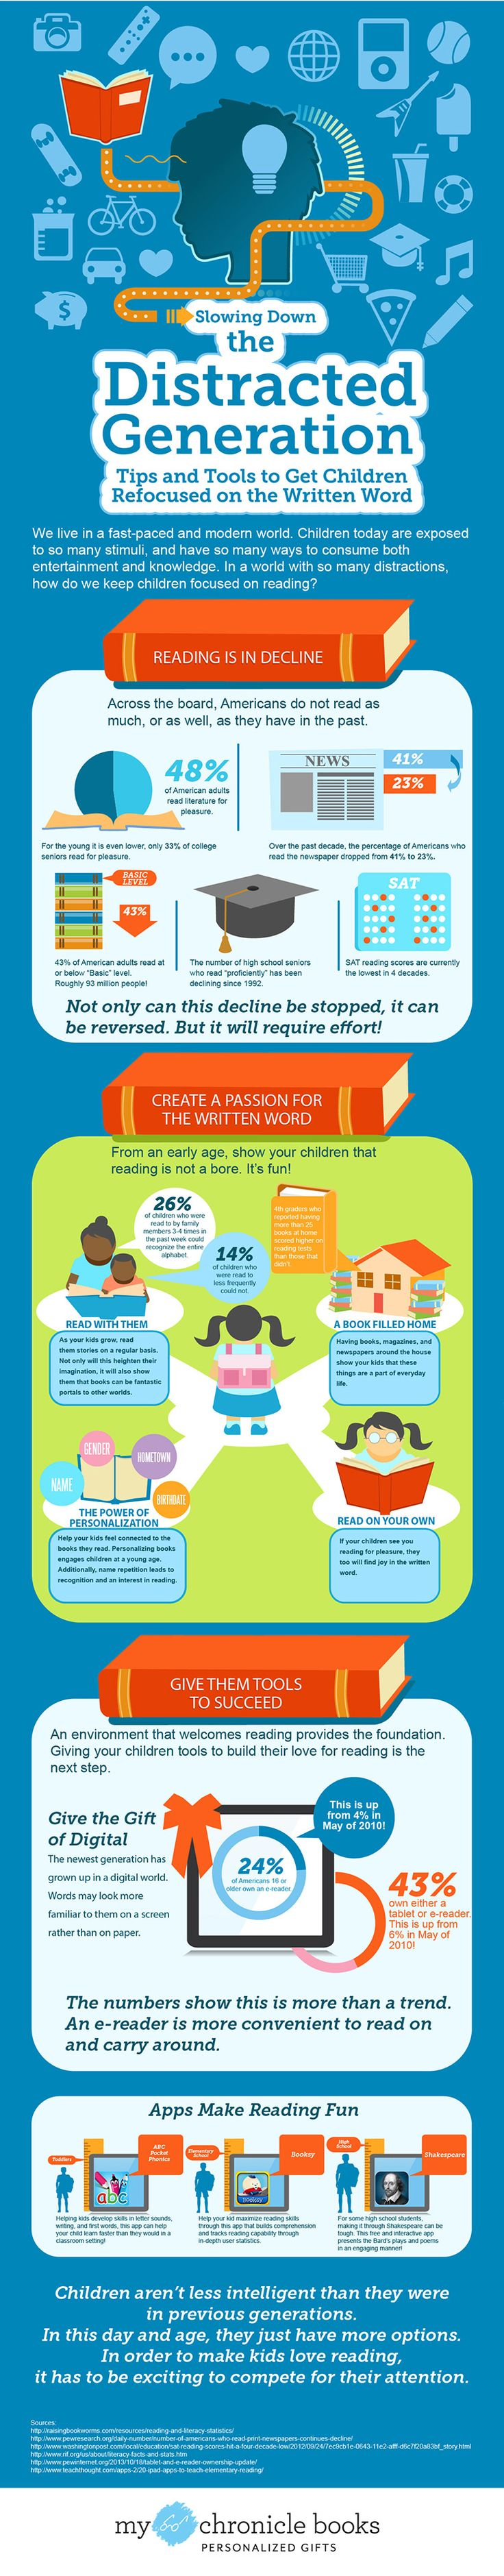 Distracted Generation Infographic - How to encourage reading in an age of technology ✿ Education / Learning Languages / Learning techniques / Learning Tips / Spanish Language ✿ Pin for later!